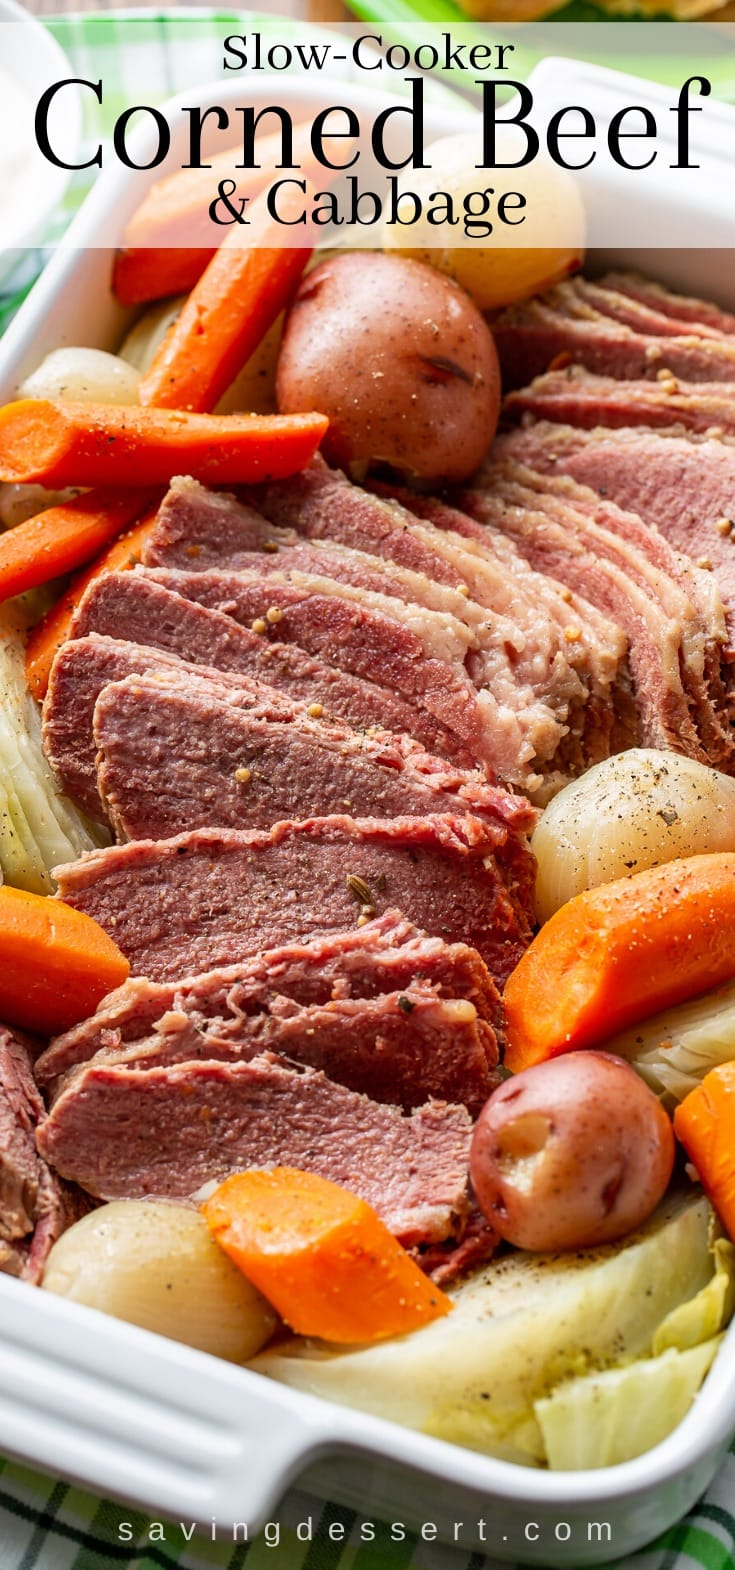 A closeup of corned beef and cabbage with potatoes